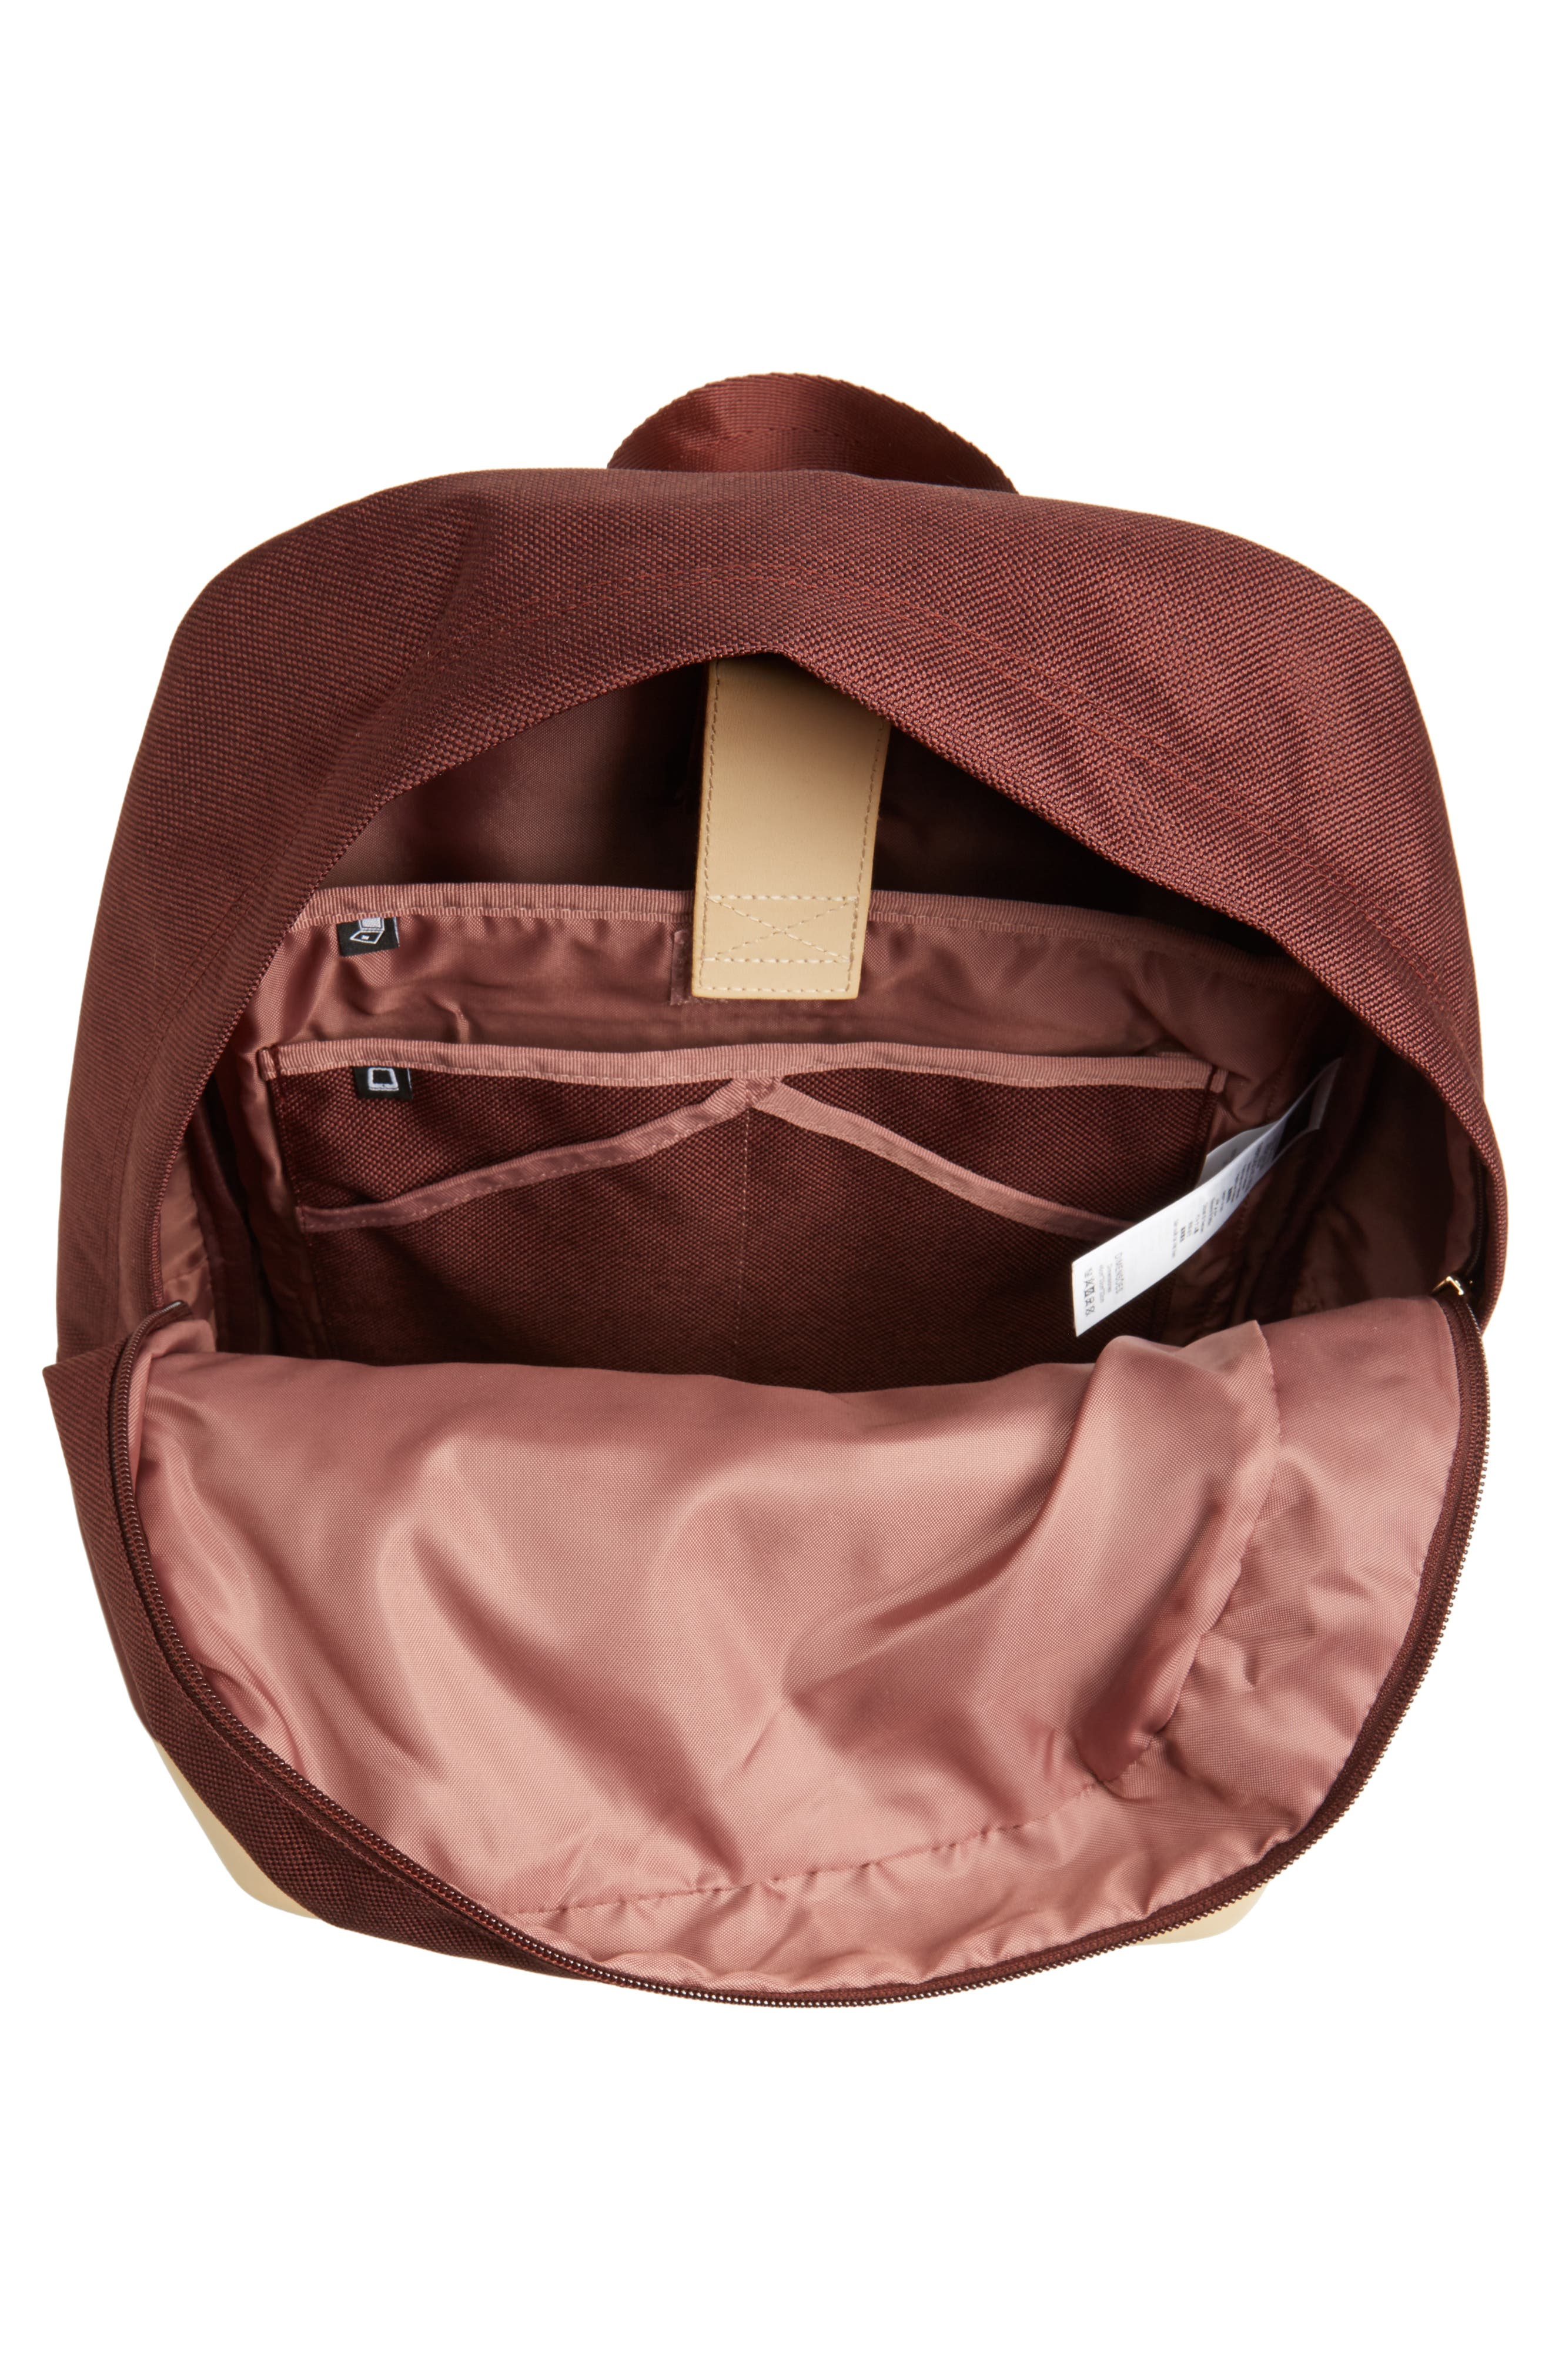 Red Rocks Axiom Backpack,                             Alternate thumbnail 4, color,                             600